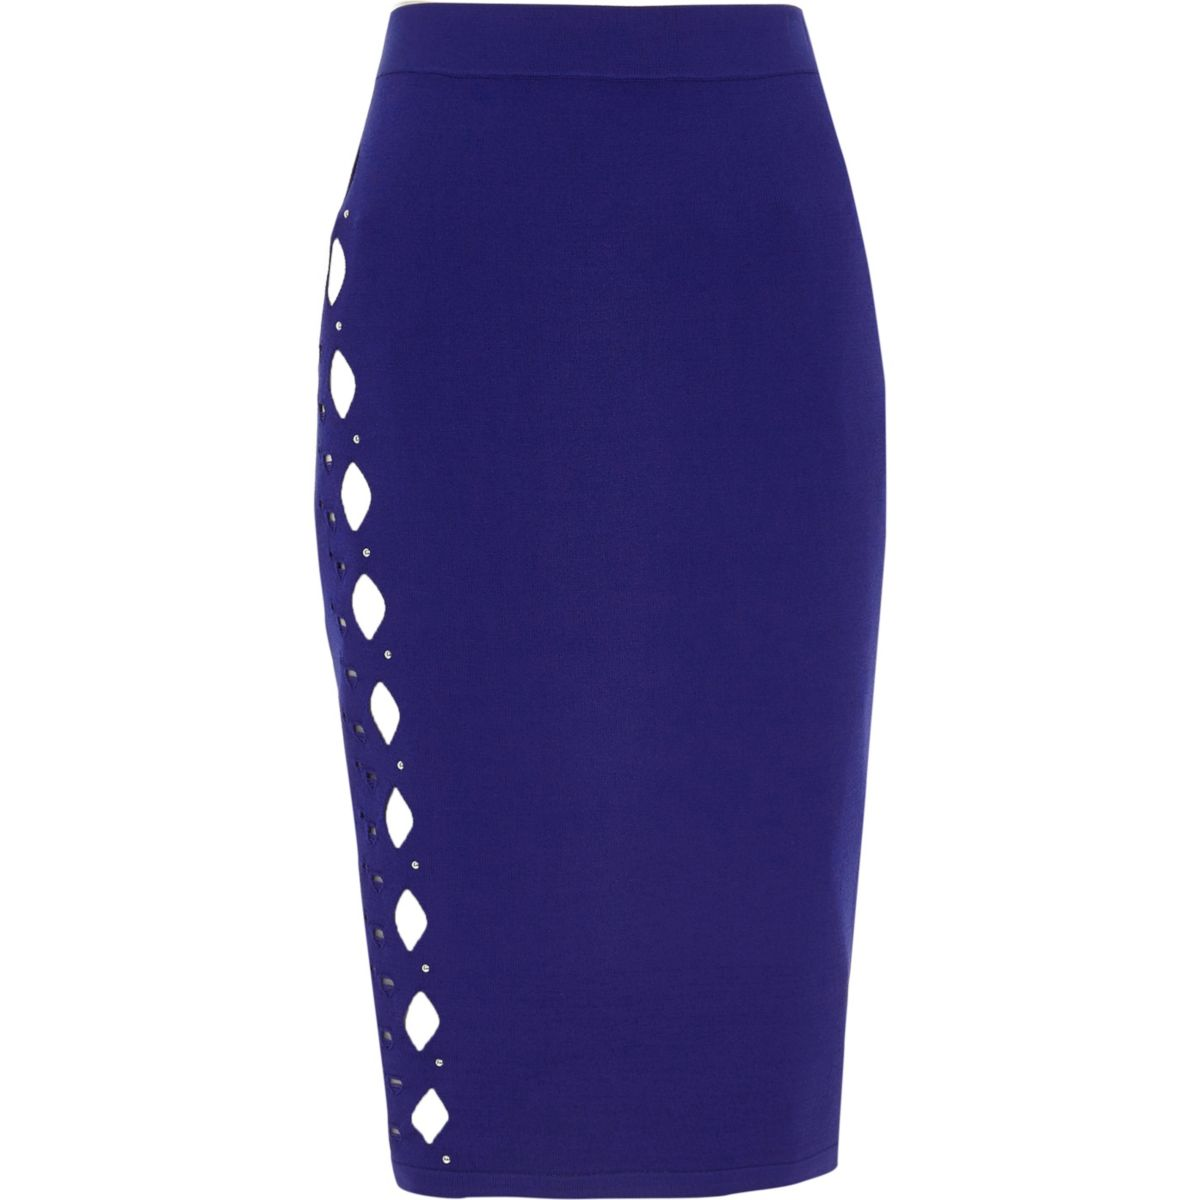 Bright blue cut out studded pencil skirt